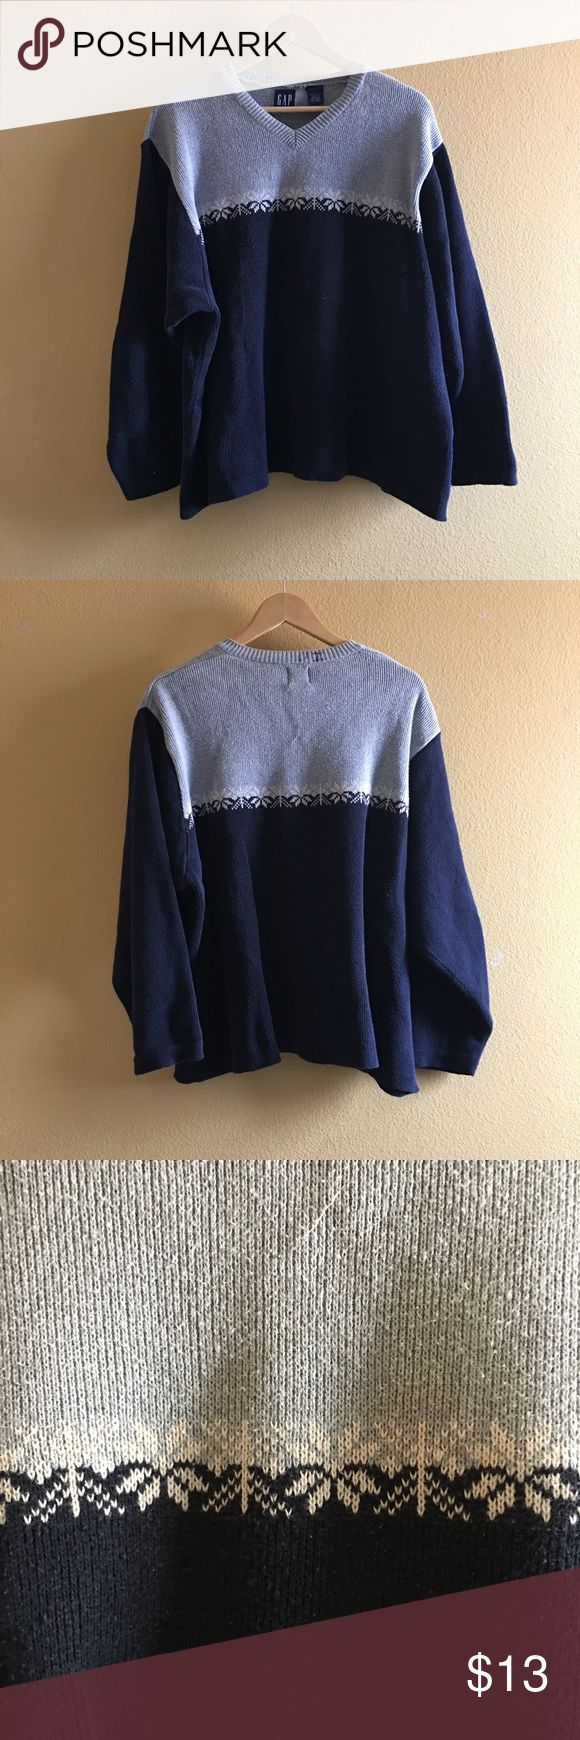 """Vintage 90's GAP sweater The Christmas Spirit Never Ends With The 90's GAP sweater 😤👌🏼 Size: Large/Chest: 26In /Length: 26In 100% cotton made in Indonesia Fits size medium 5'7 """"HI"""" engraved in marker shown in PHOTO 4 ( I had nothing todo with this ) GAP Sweaters V-Neck"""